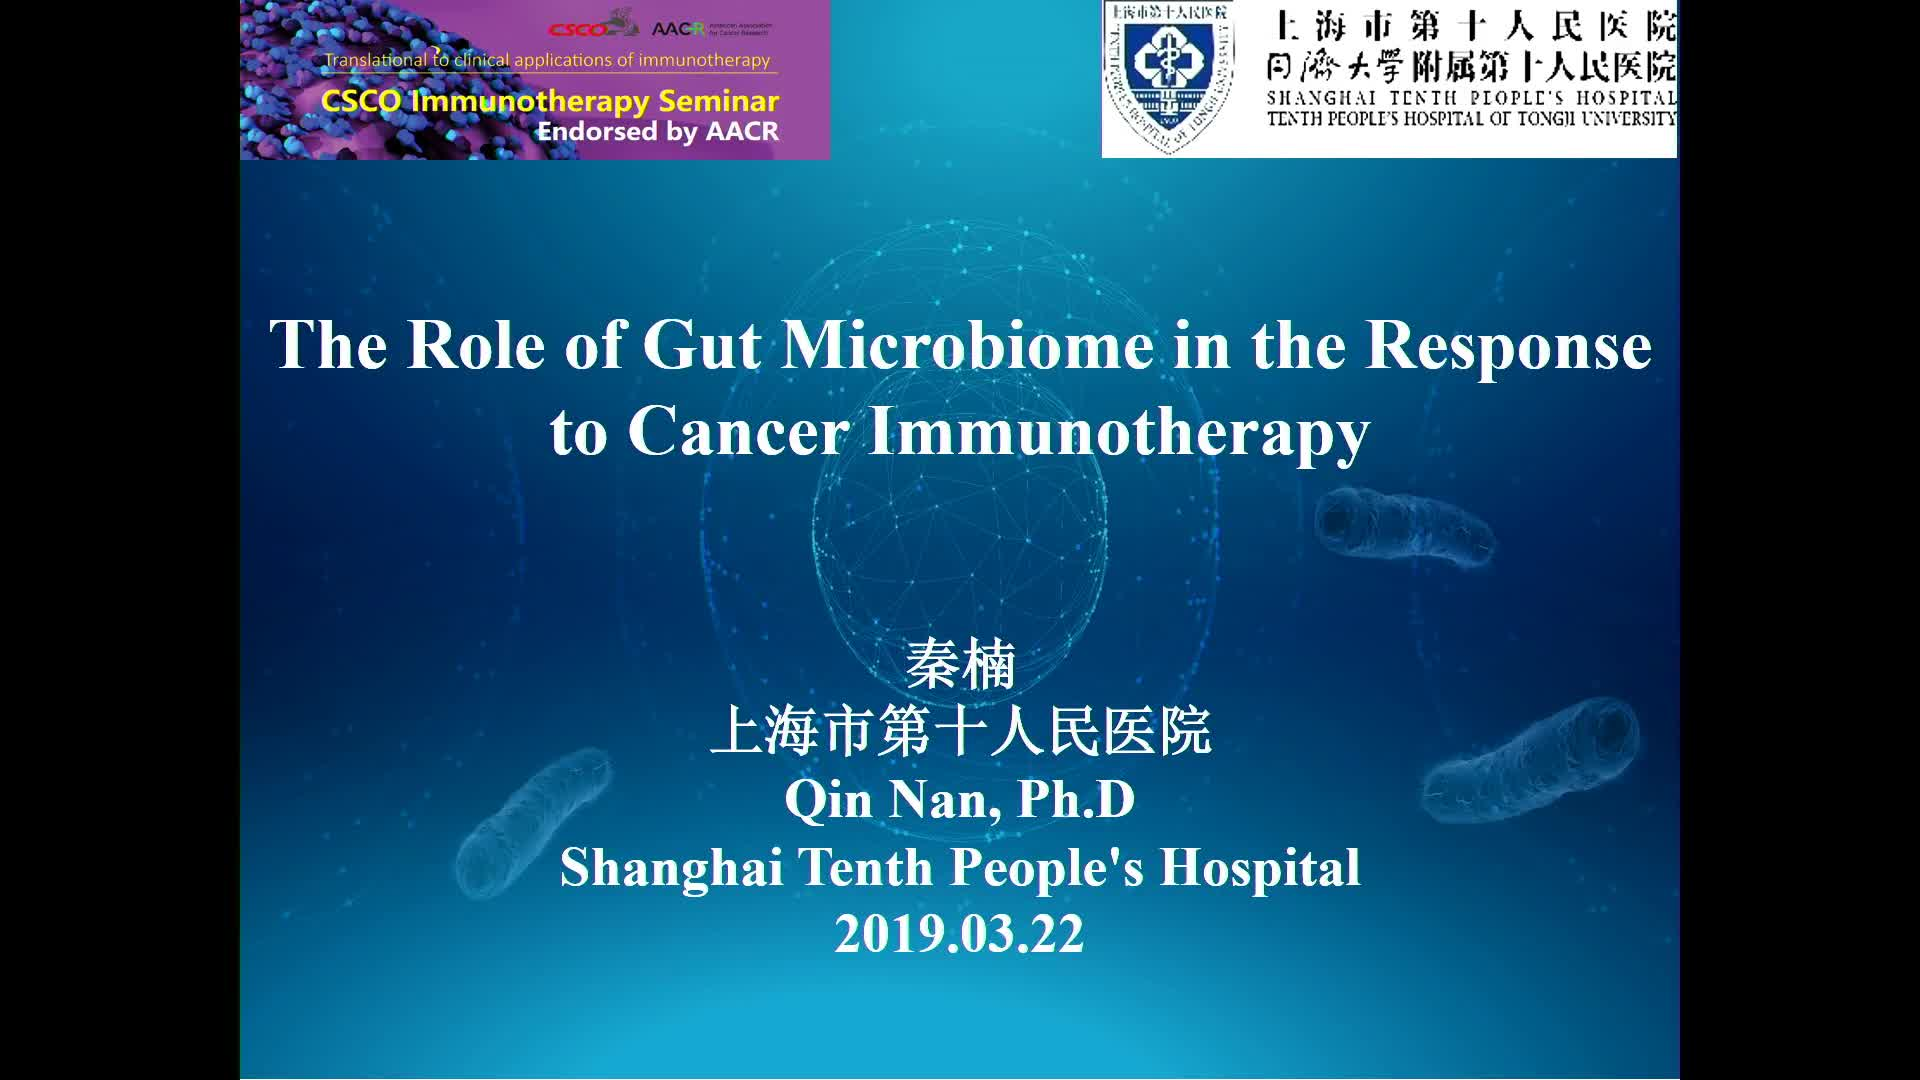 The role of Gut Microbiome in the Response to cancer immunotherapy